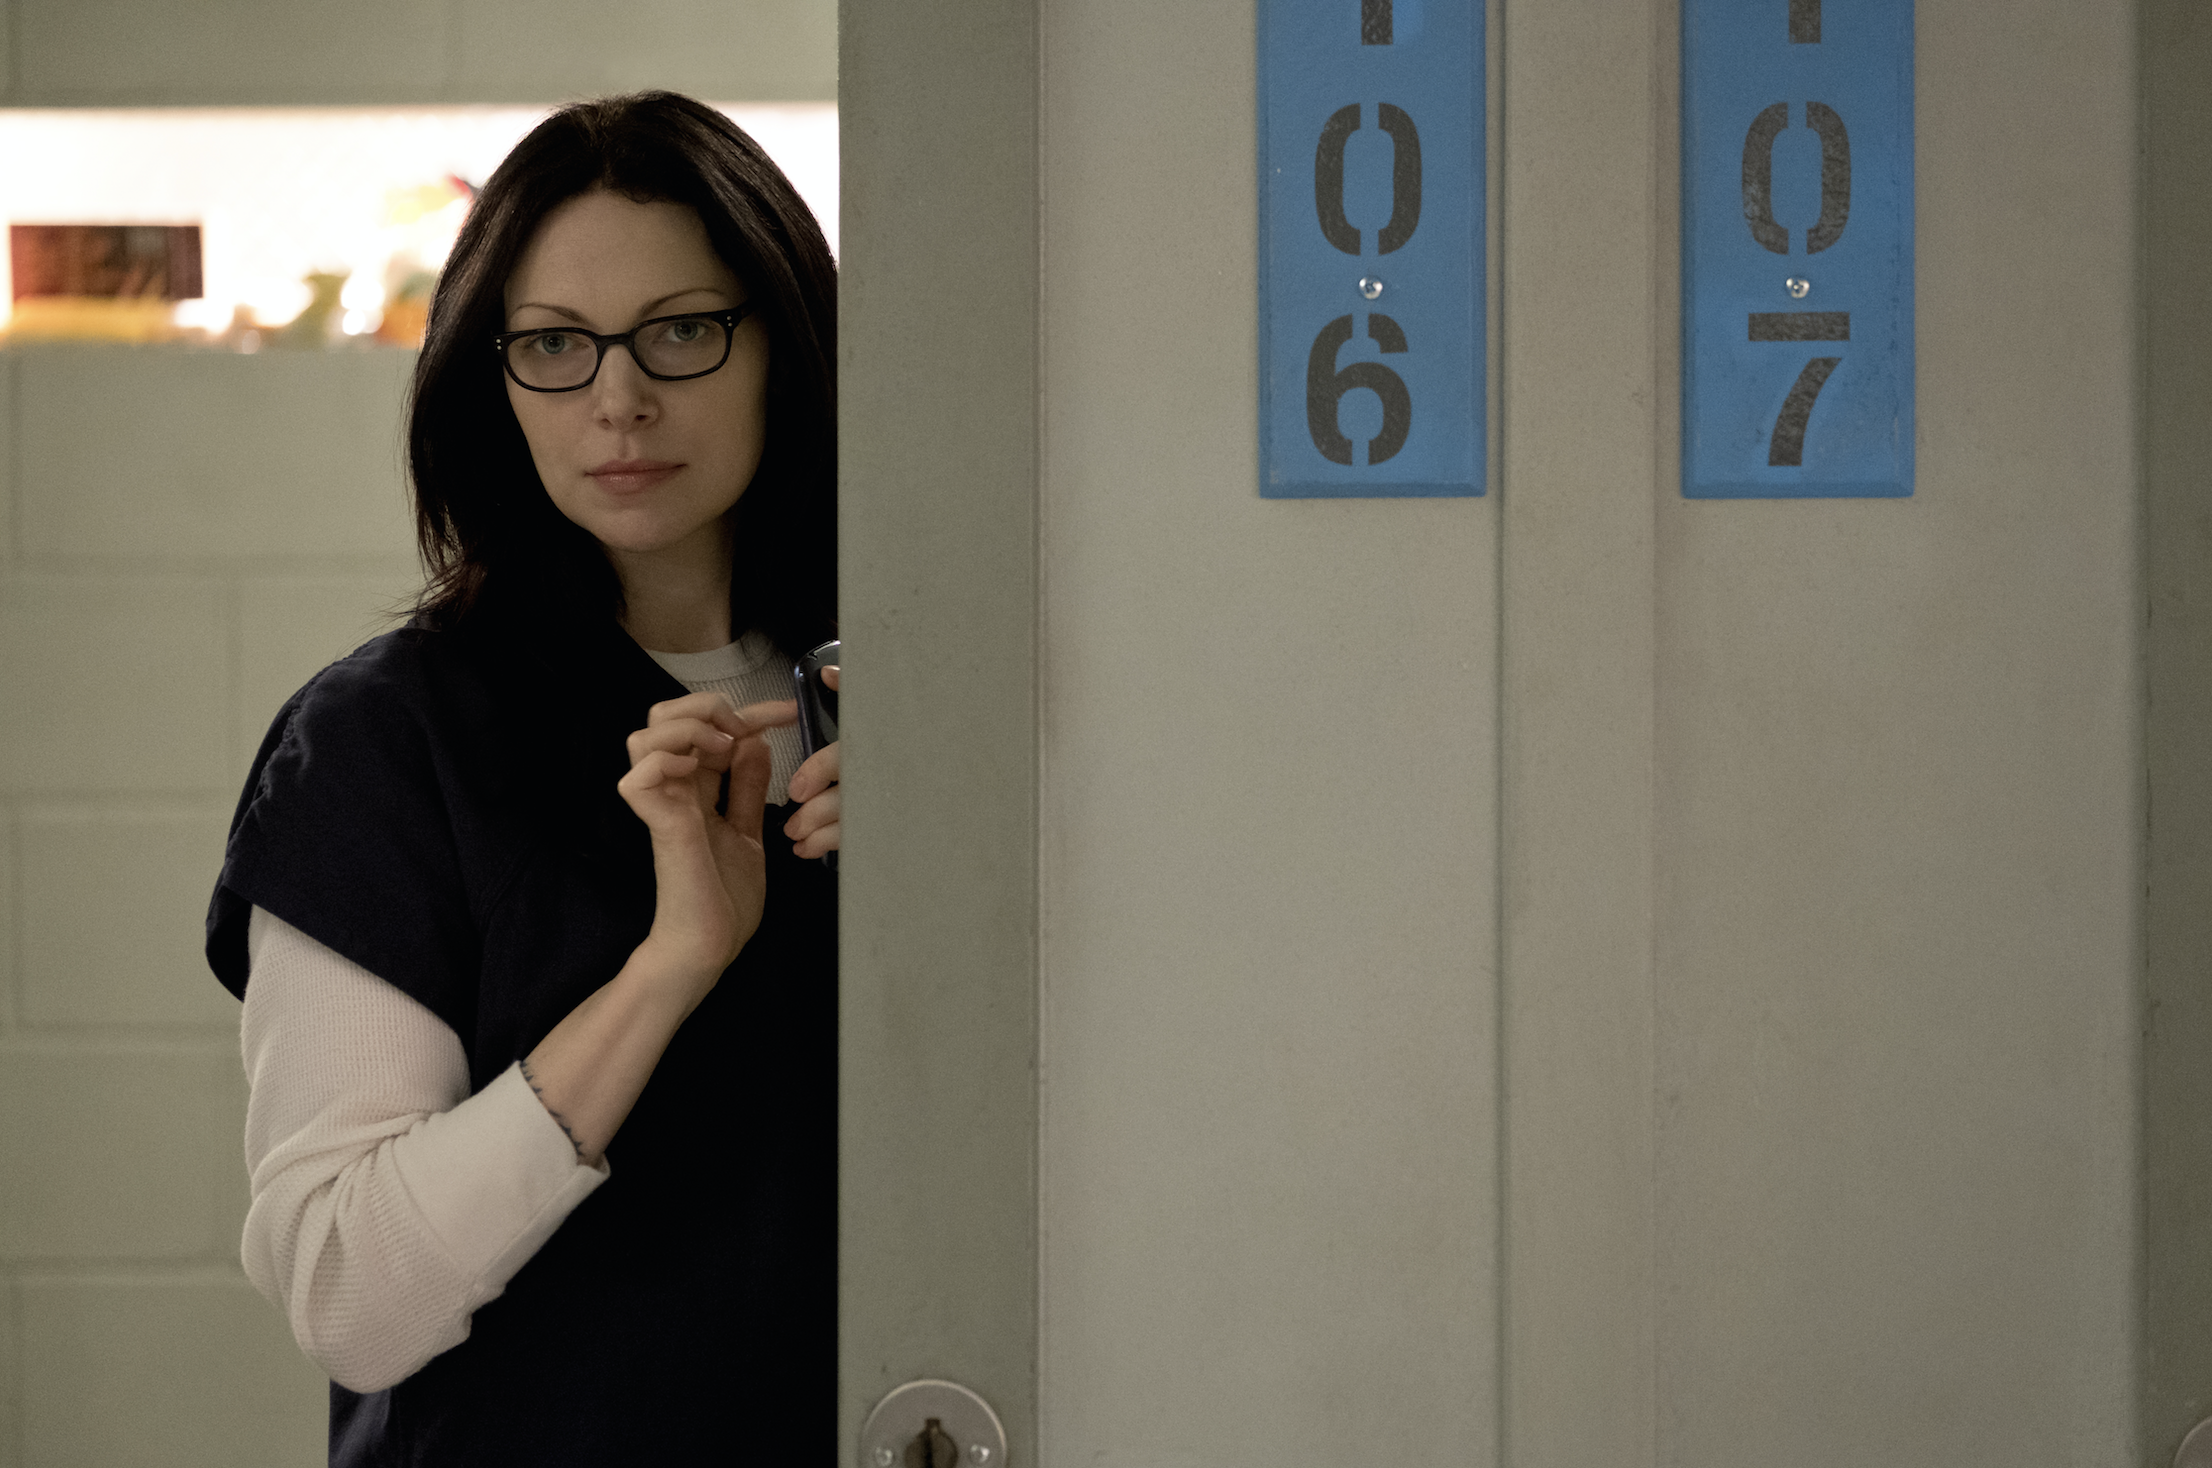 Everything You Need to Know About 'Orange is the New Black' Season 7